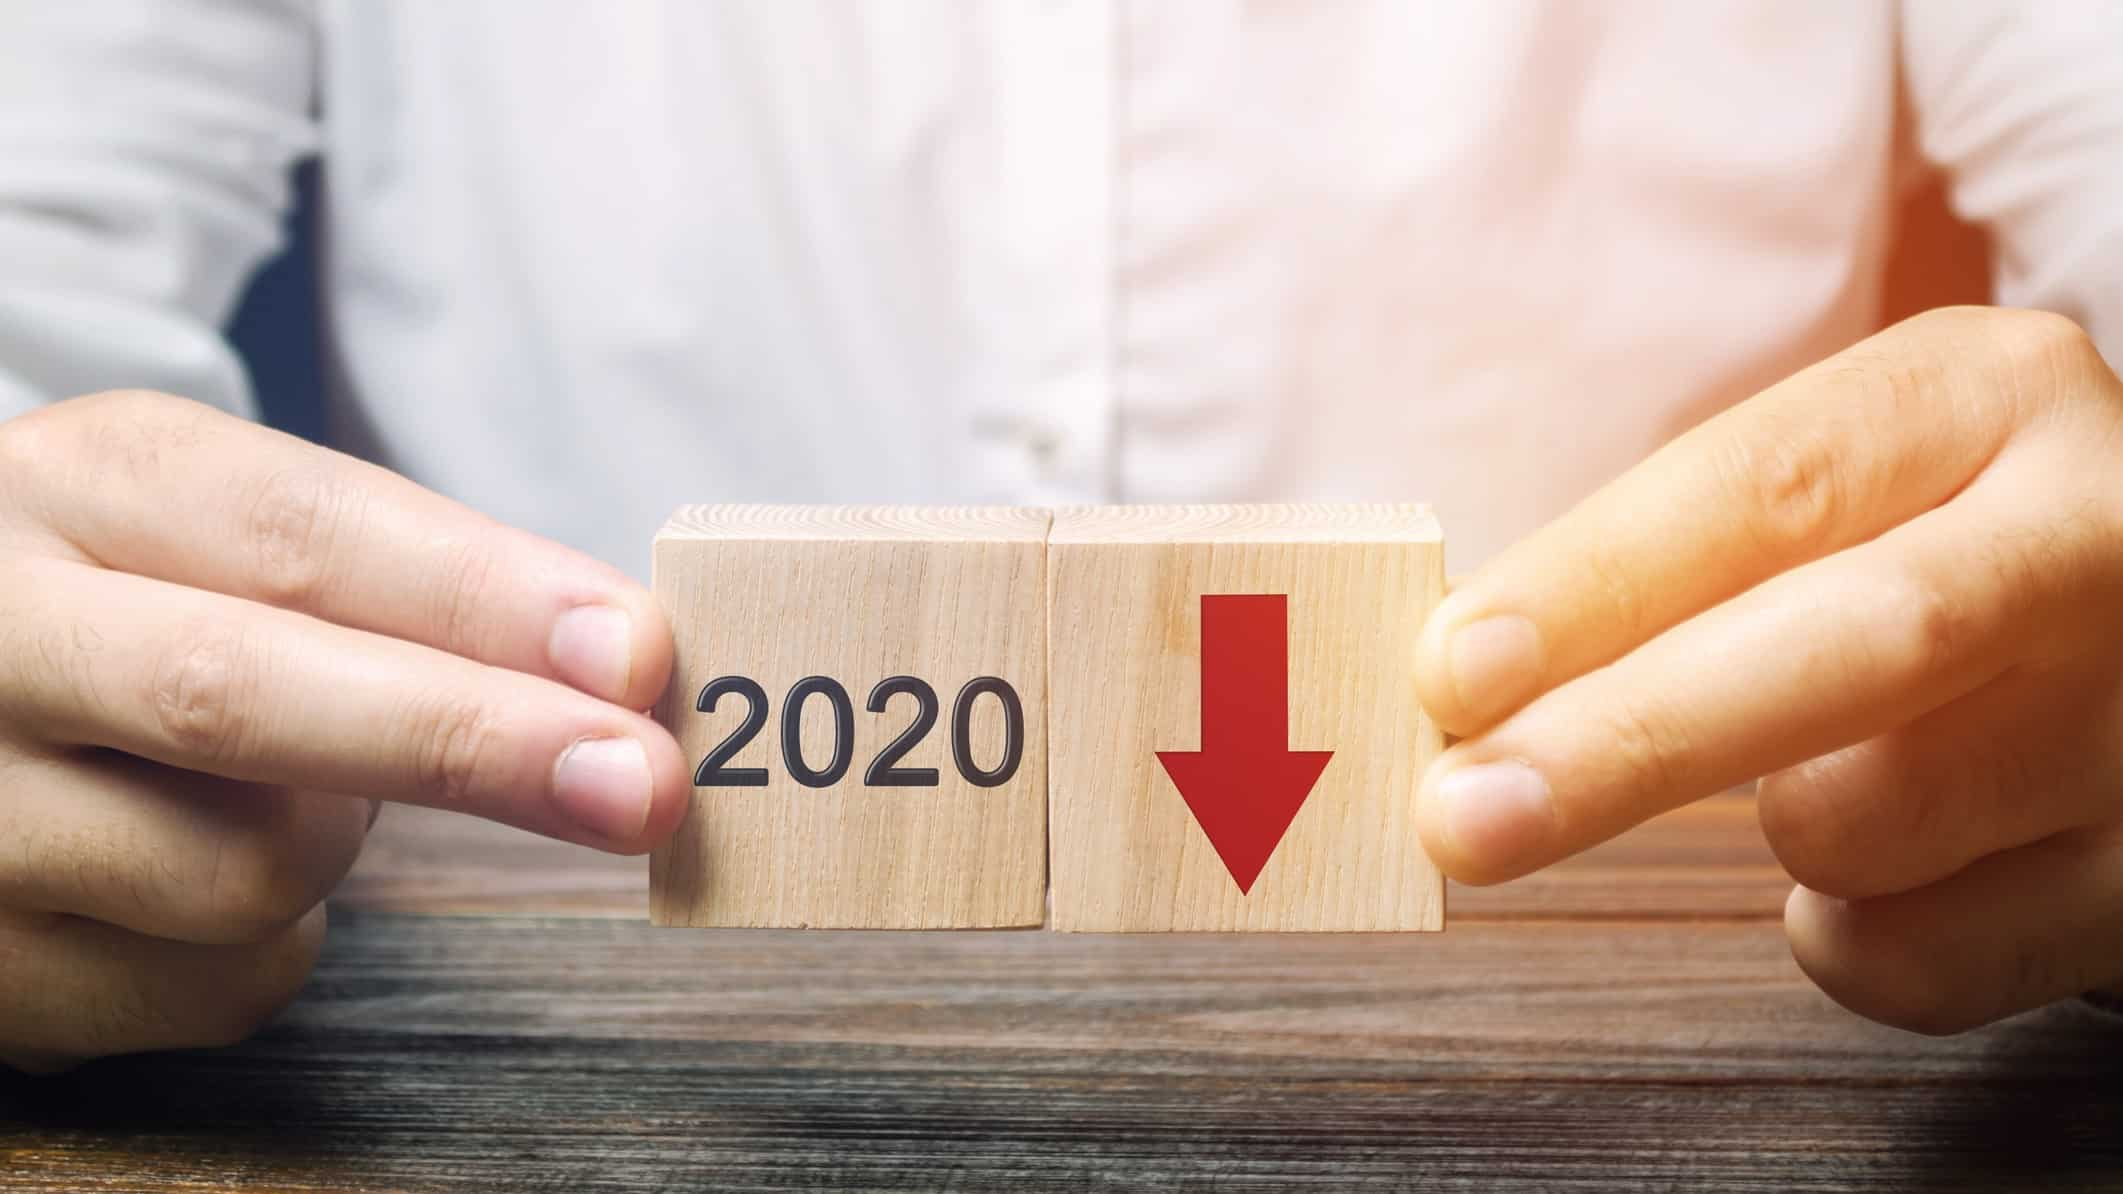 man holding wooden blocks with red down arrow and 2020 on them representing falling South32 share price